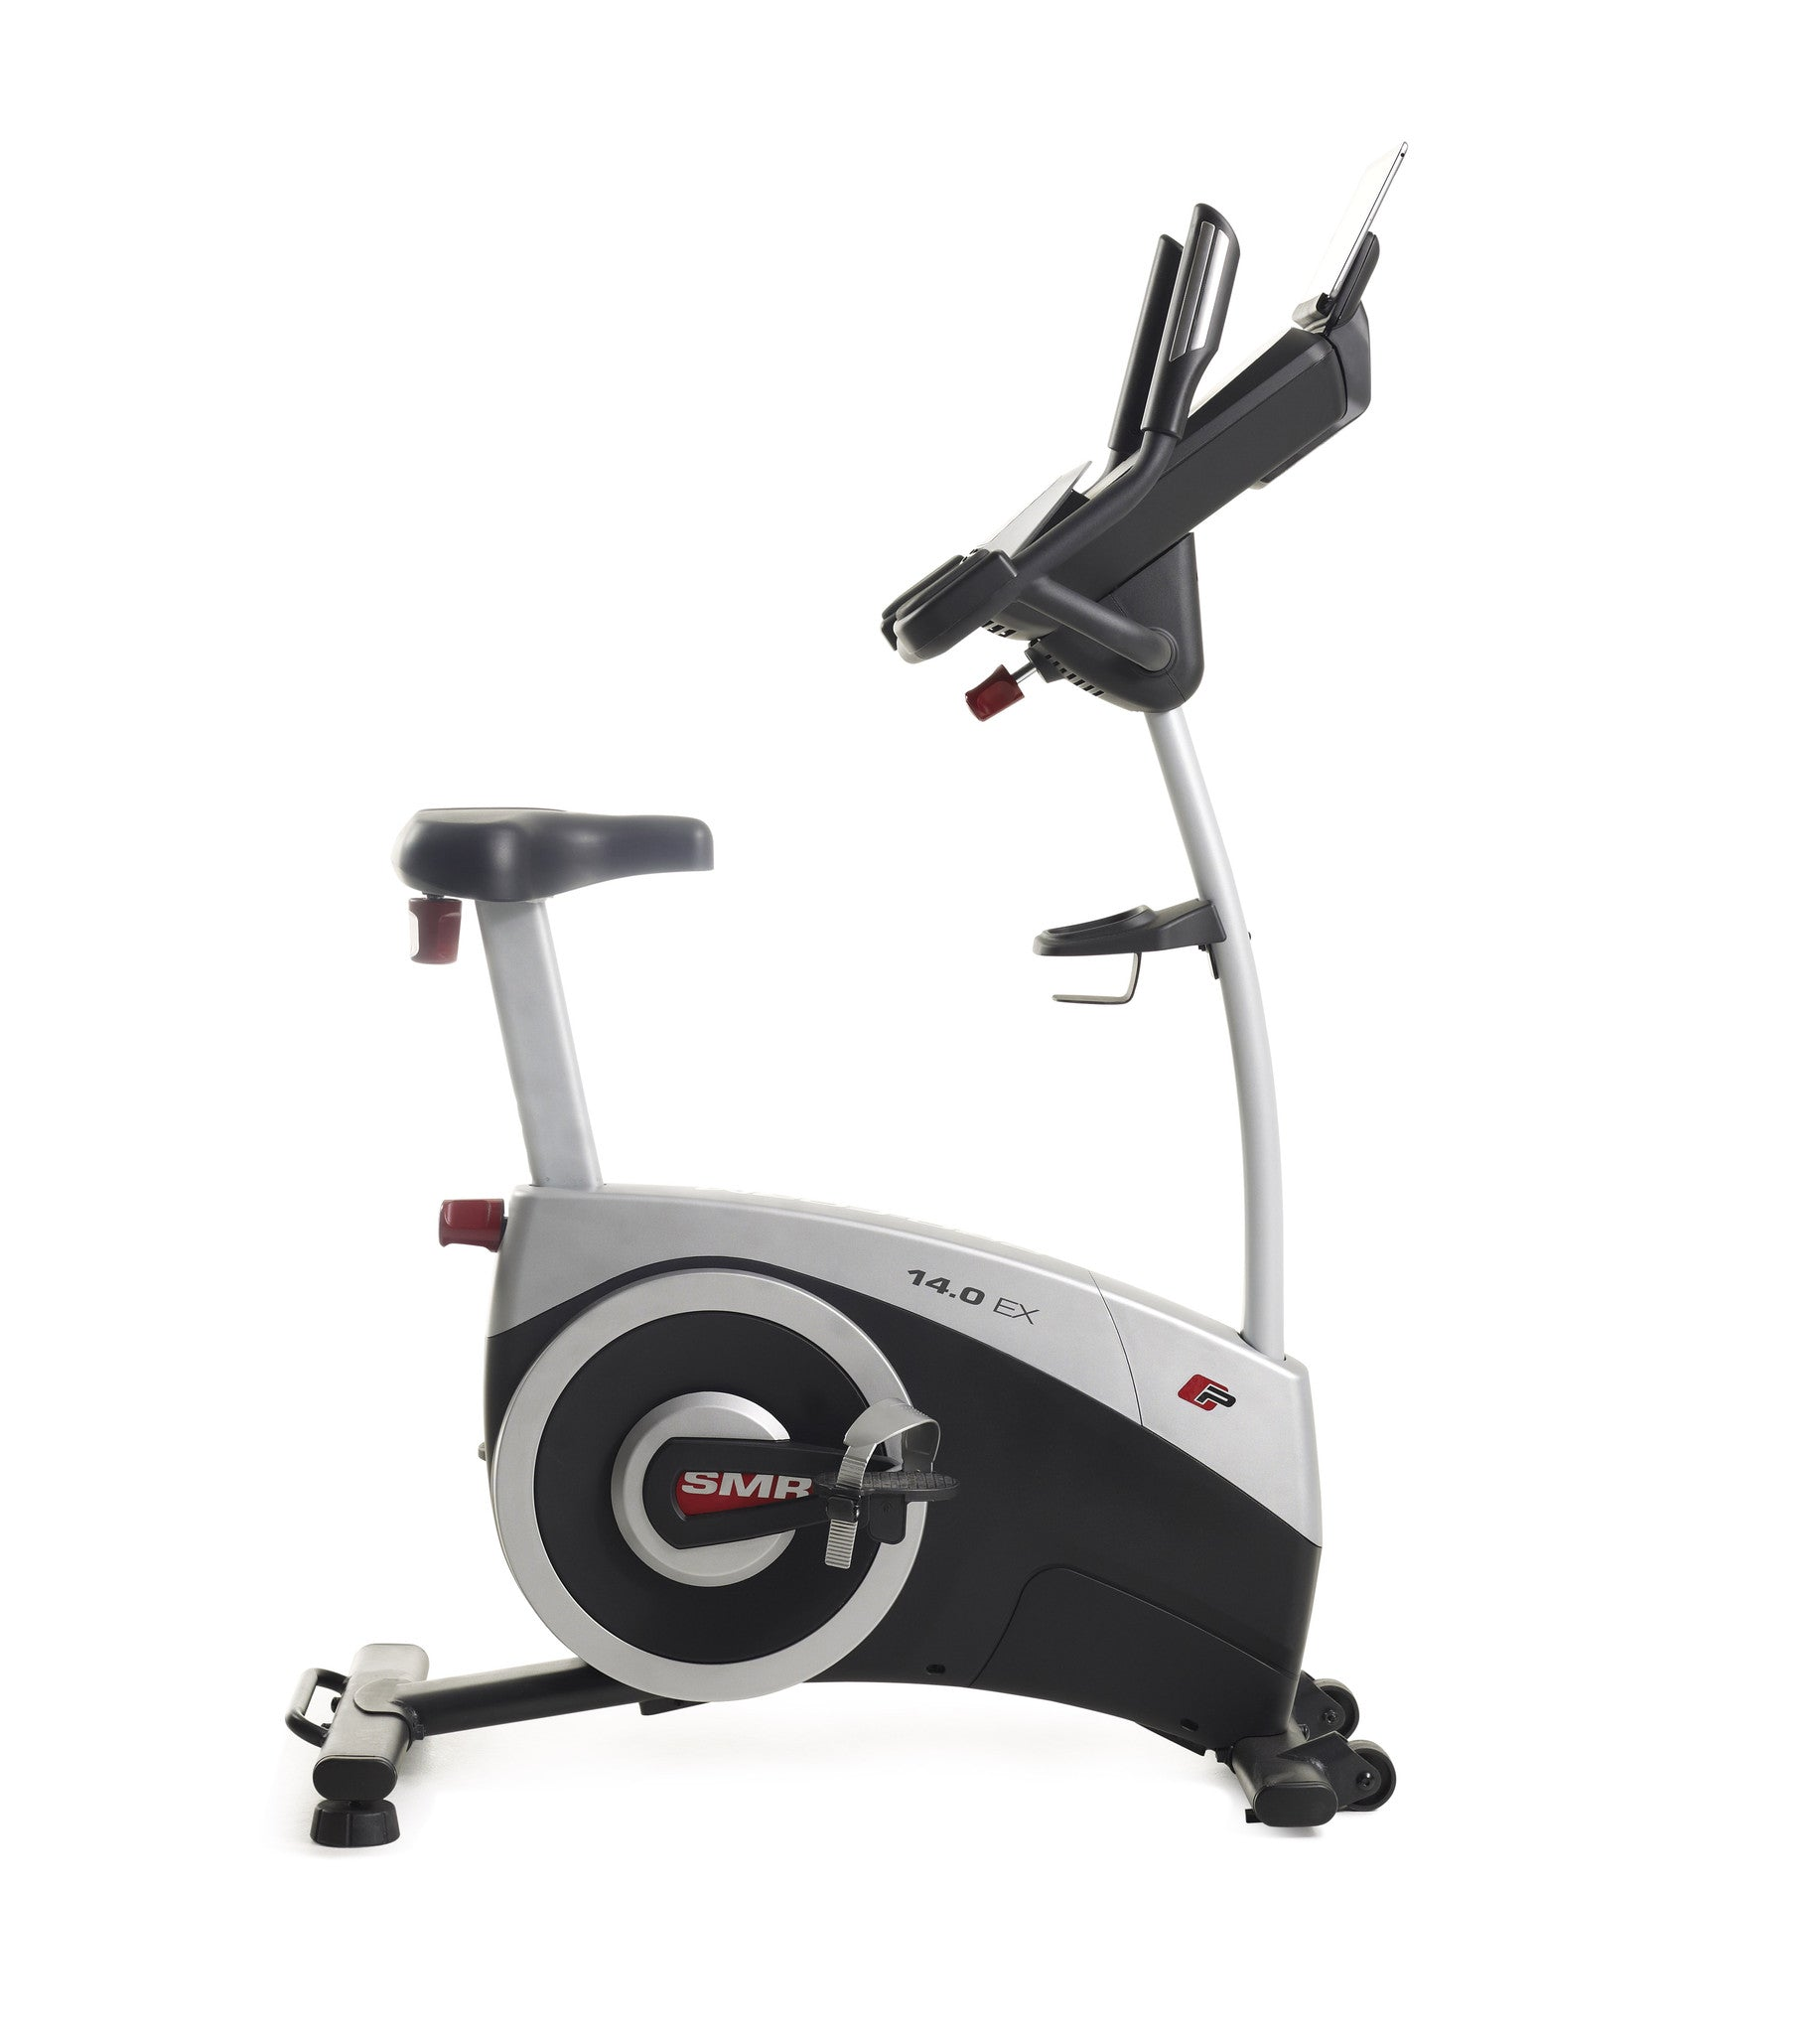 Proform Power Sensitive 7 0 Exercise Bike: ProForm 14.0 EX Upright Bike